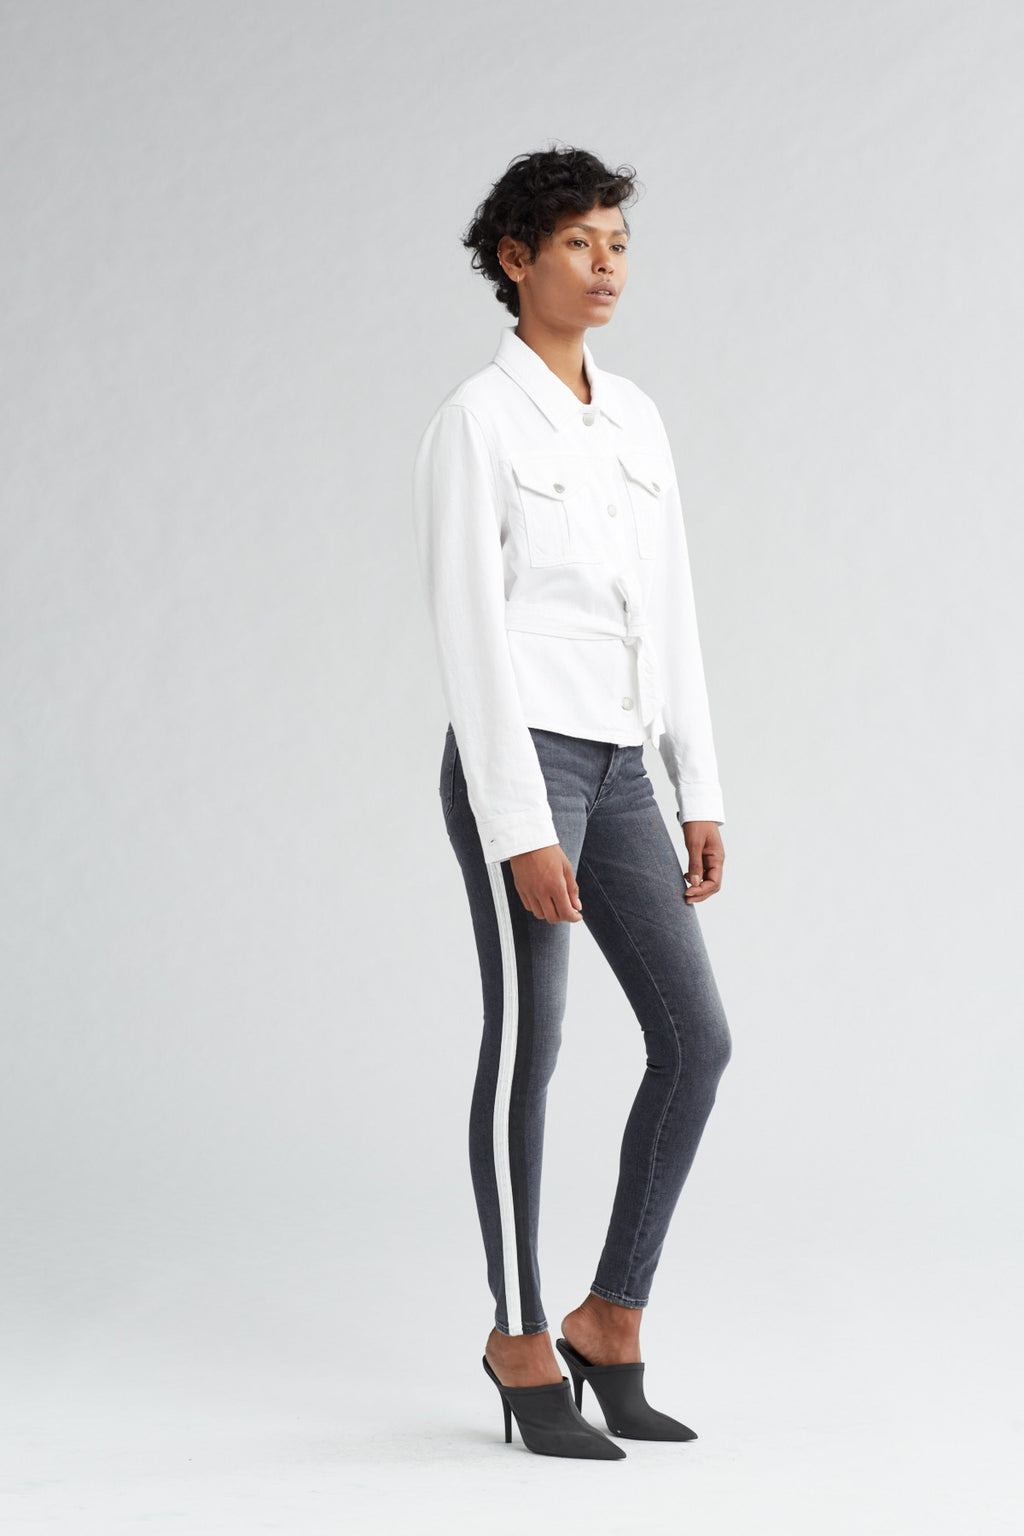 MILITARY TIE TOP - OFF WHITE - Image 2